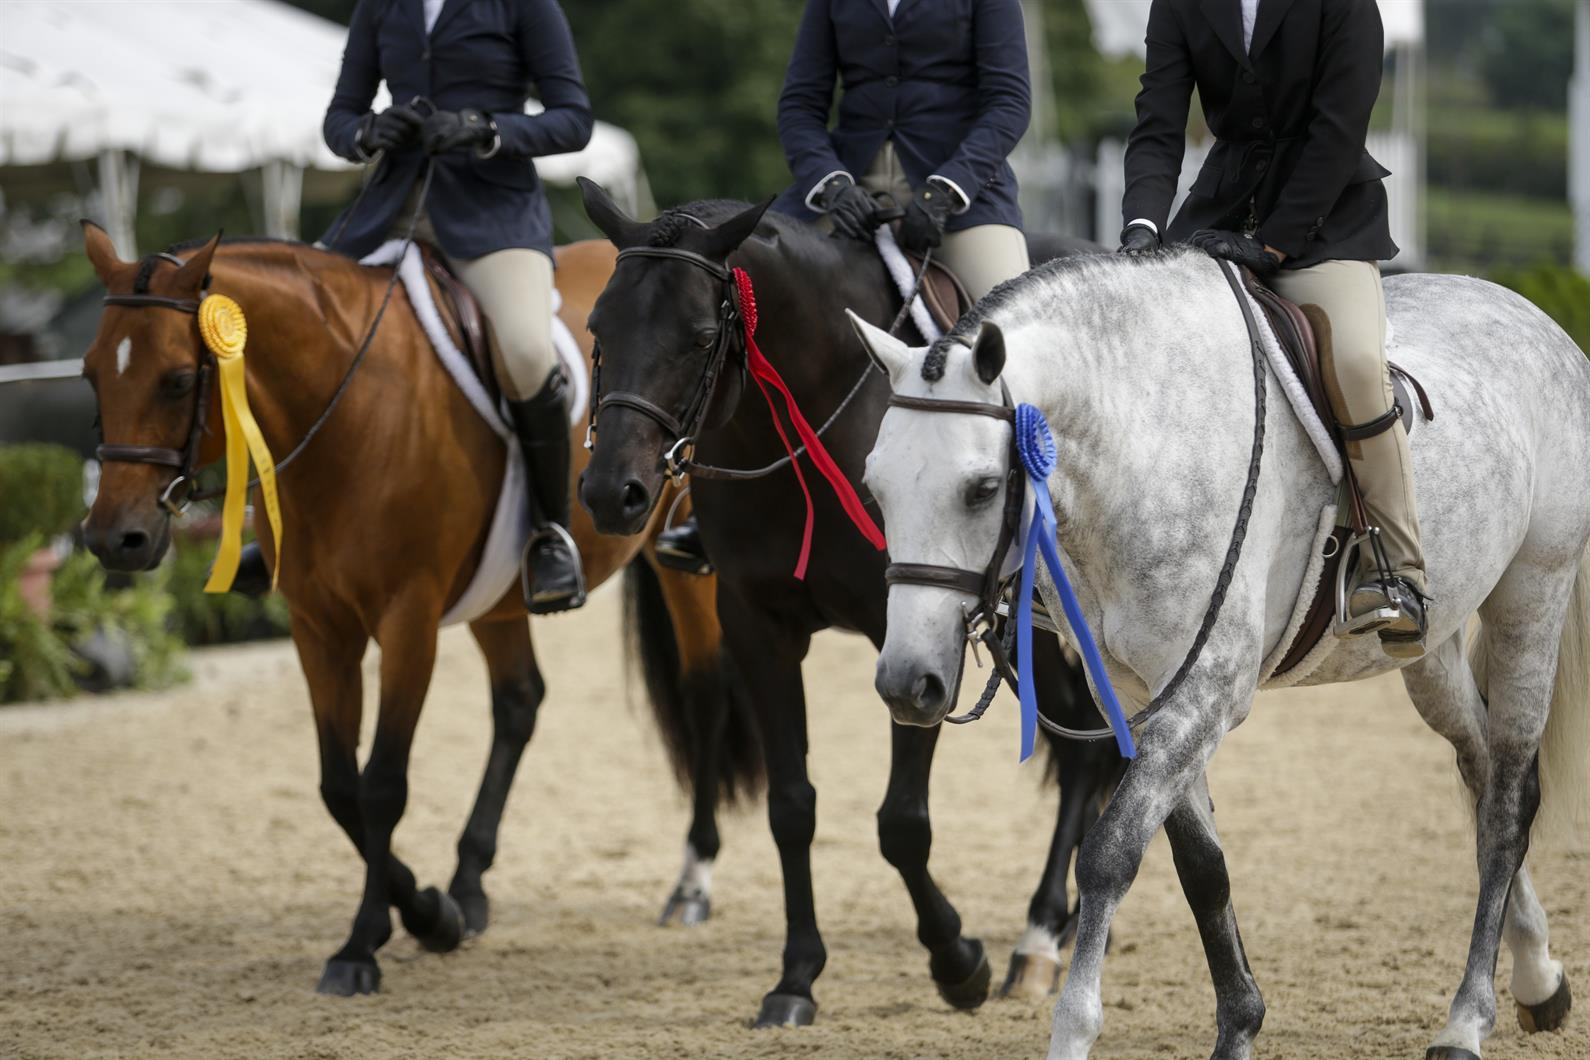 2019 USEF Pony Finals presented by Collecting Gaits Farm Ready to